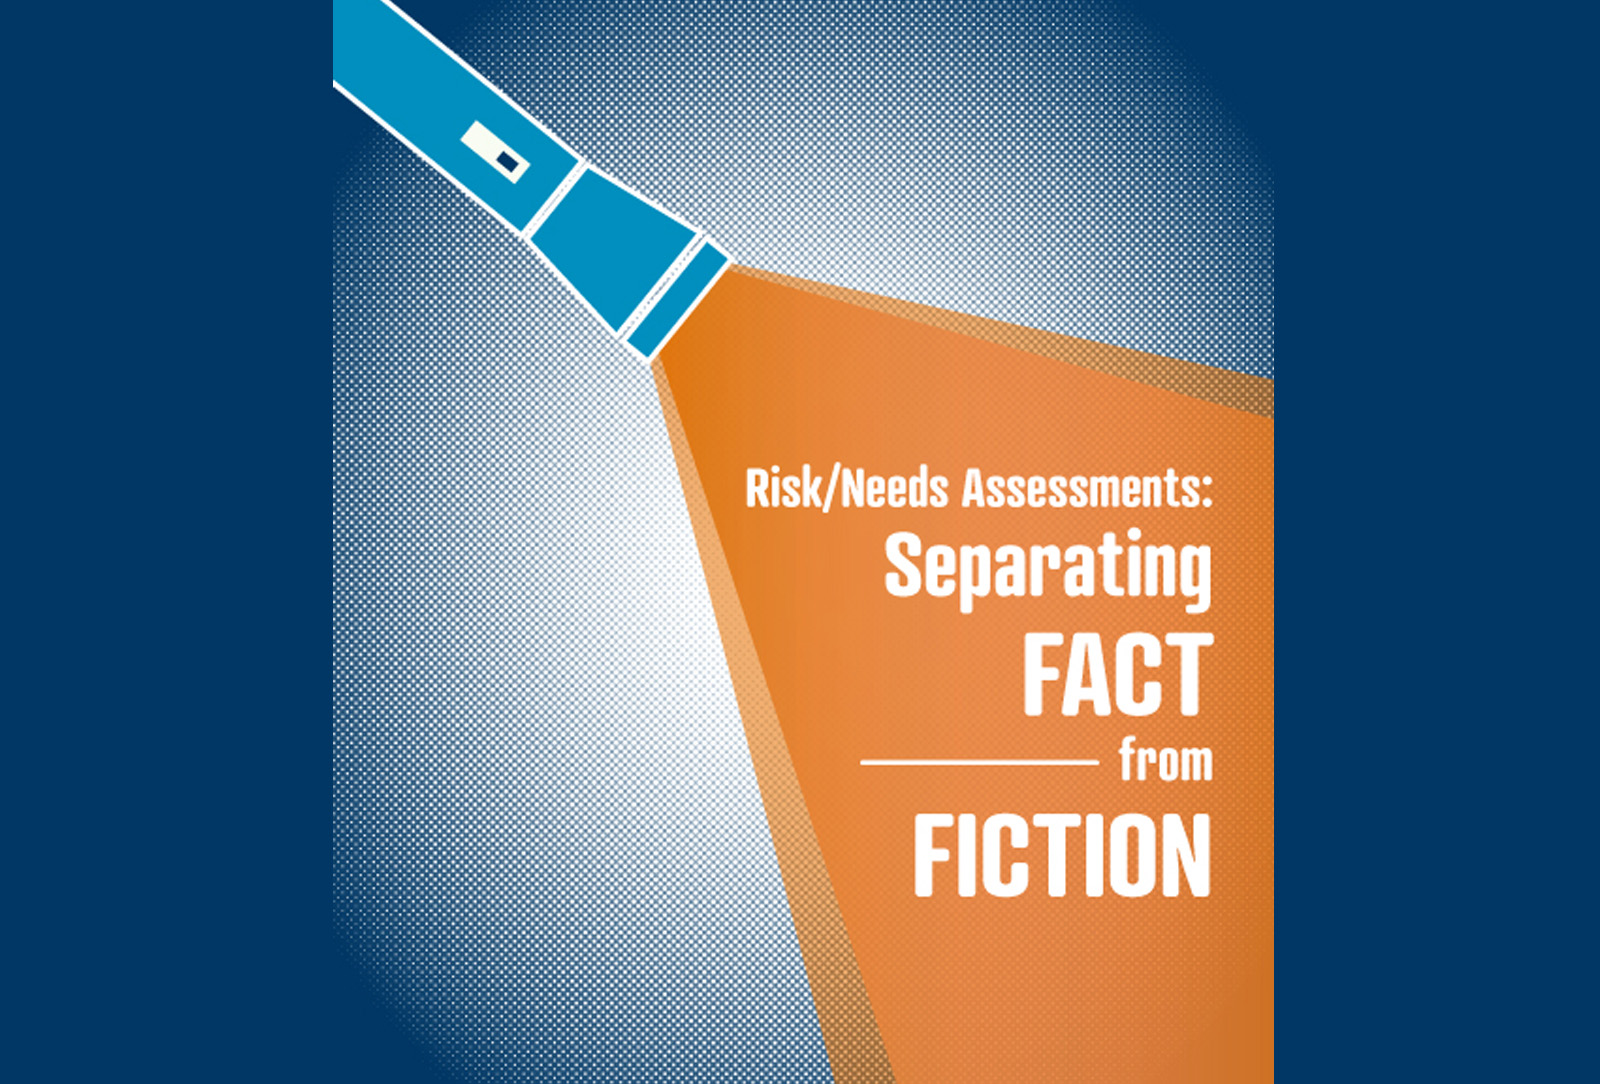 Risk/Needs Assessments: Separating Fact from Fiction